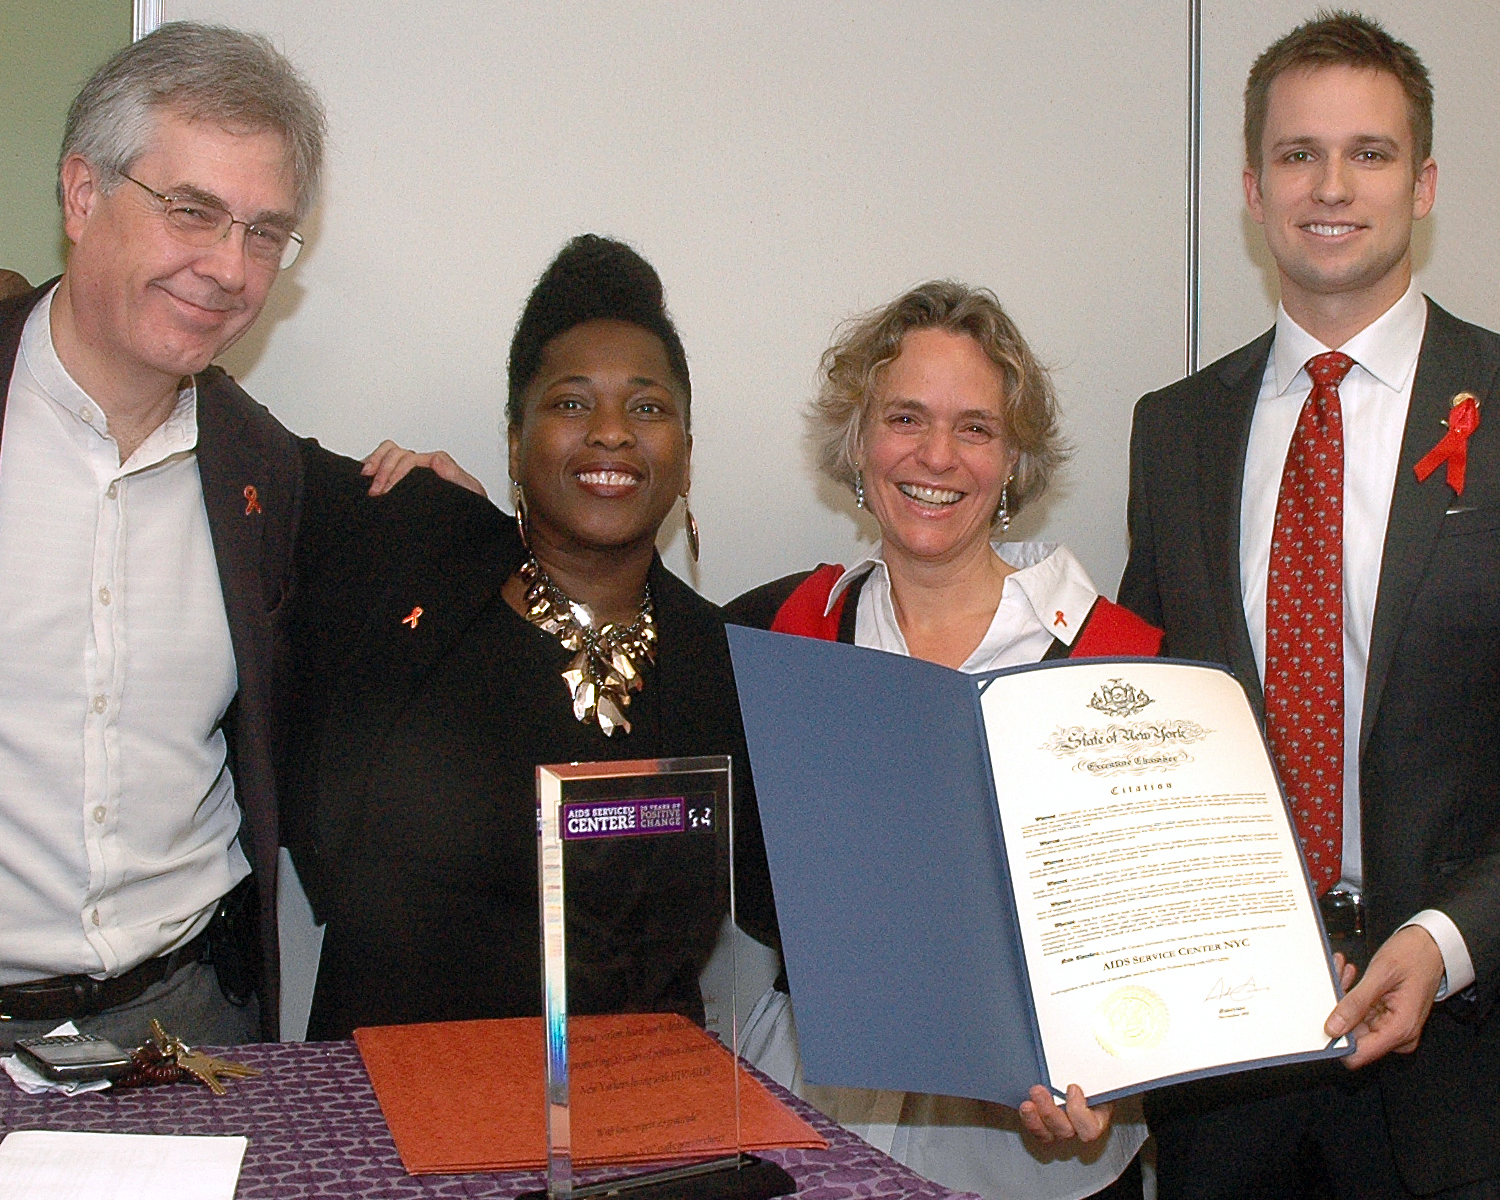 Presentation of a Citation signed by Governor Cuomo: Kim Atkins, Brenda Starks-Ross, Sharen Duke and Eric Bottcher, Special Assistant for Community Affairs S(New York State Cabinet Level Position)